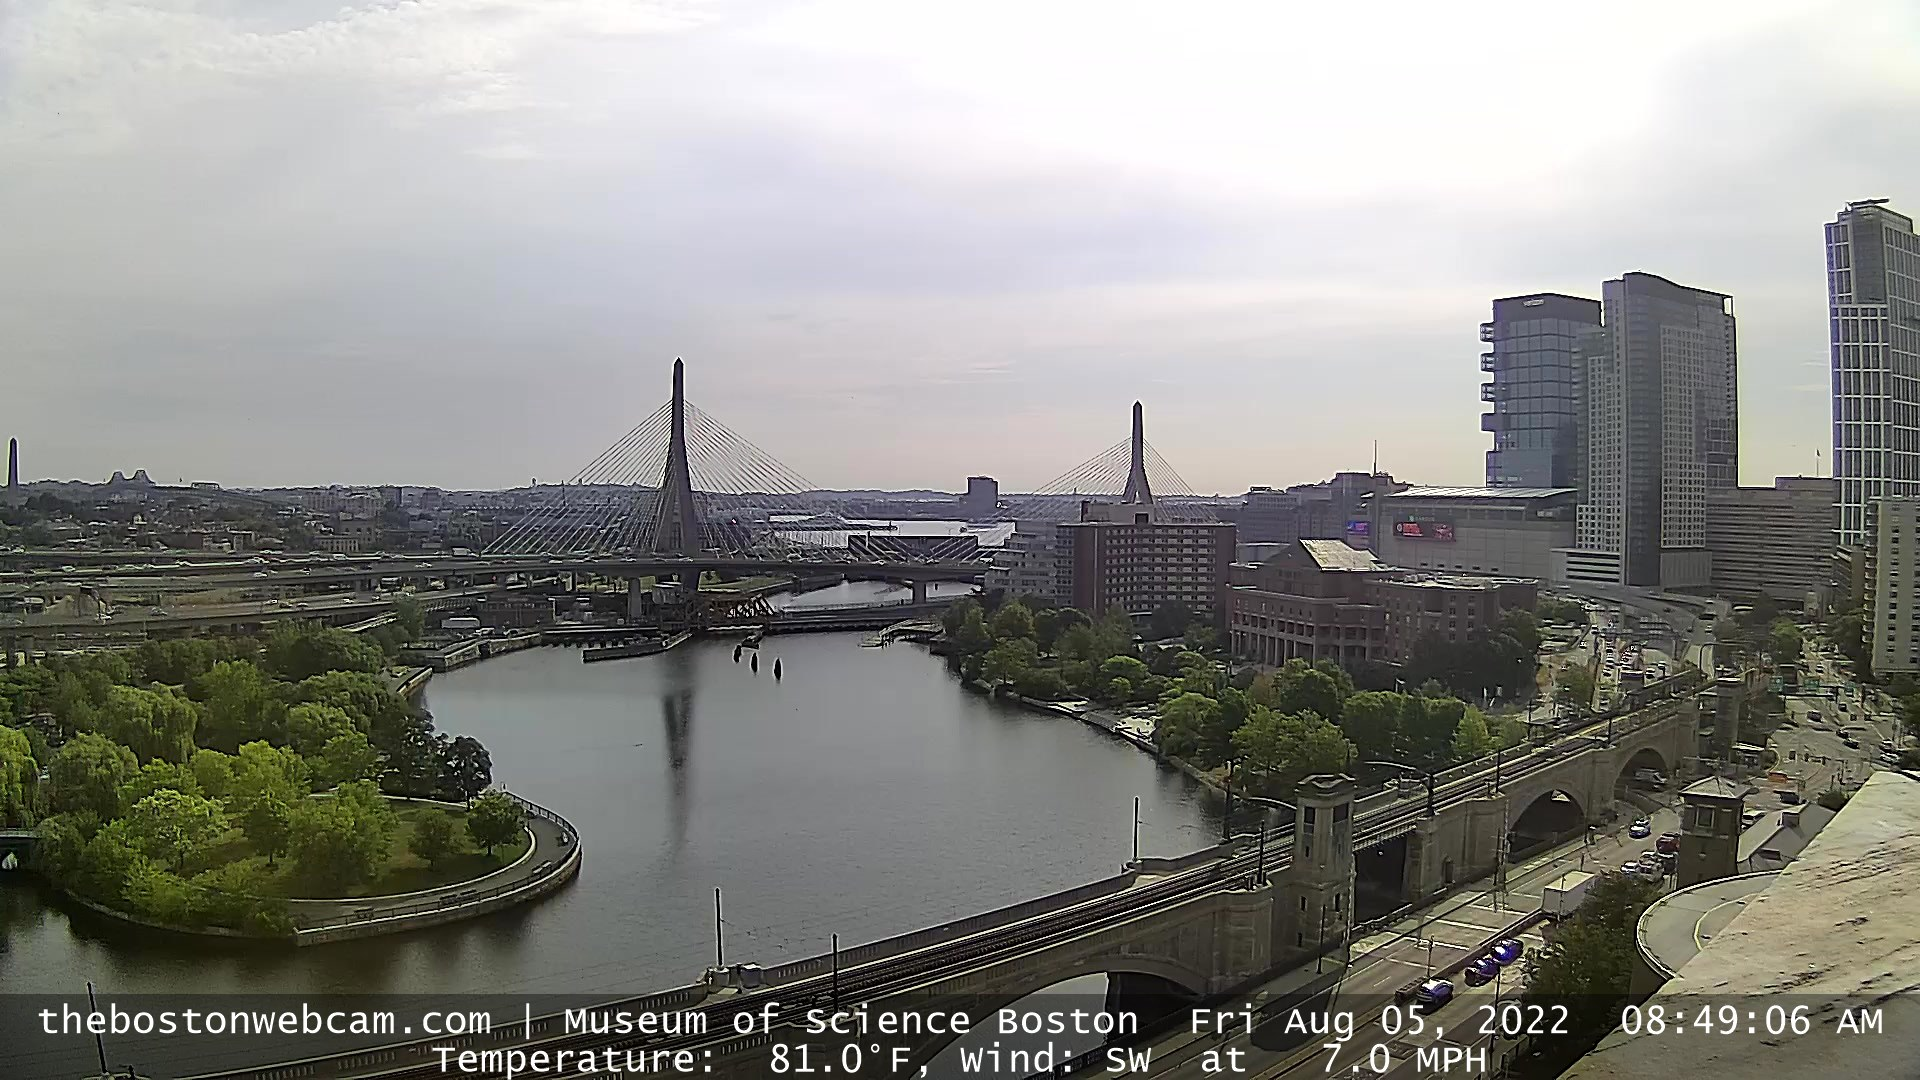 Charles River / Zakim Bridge